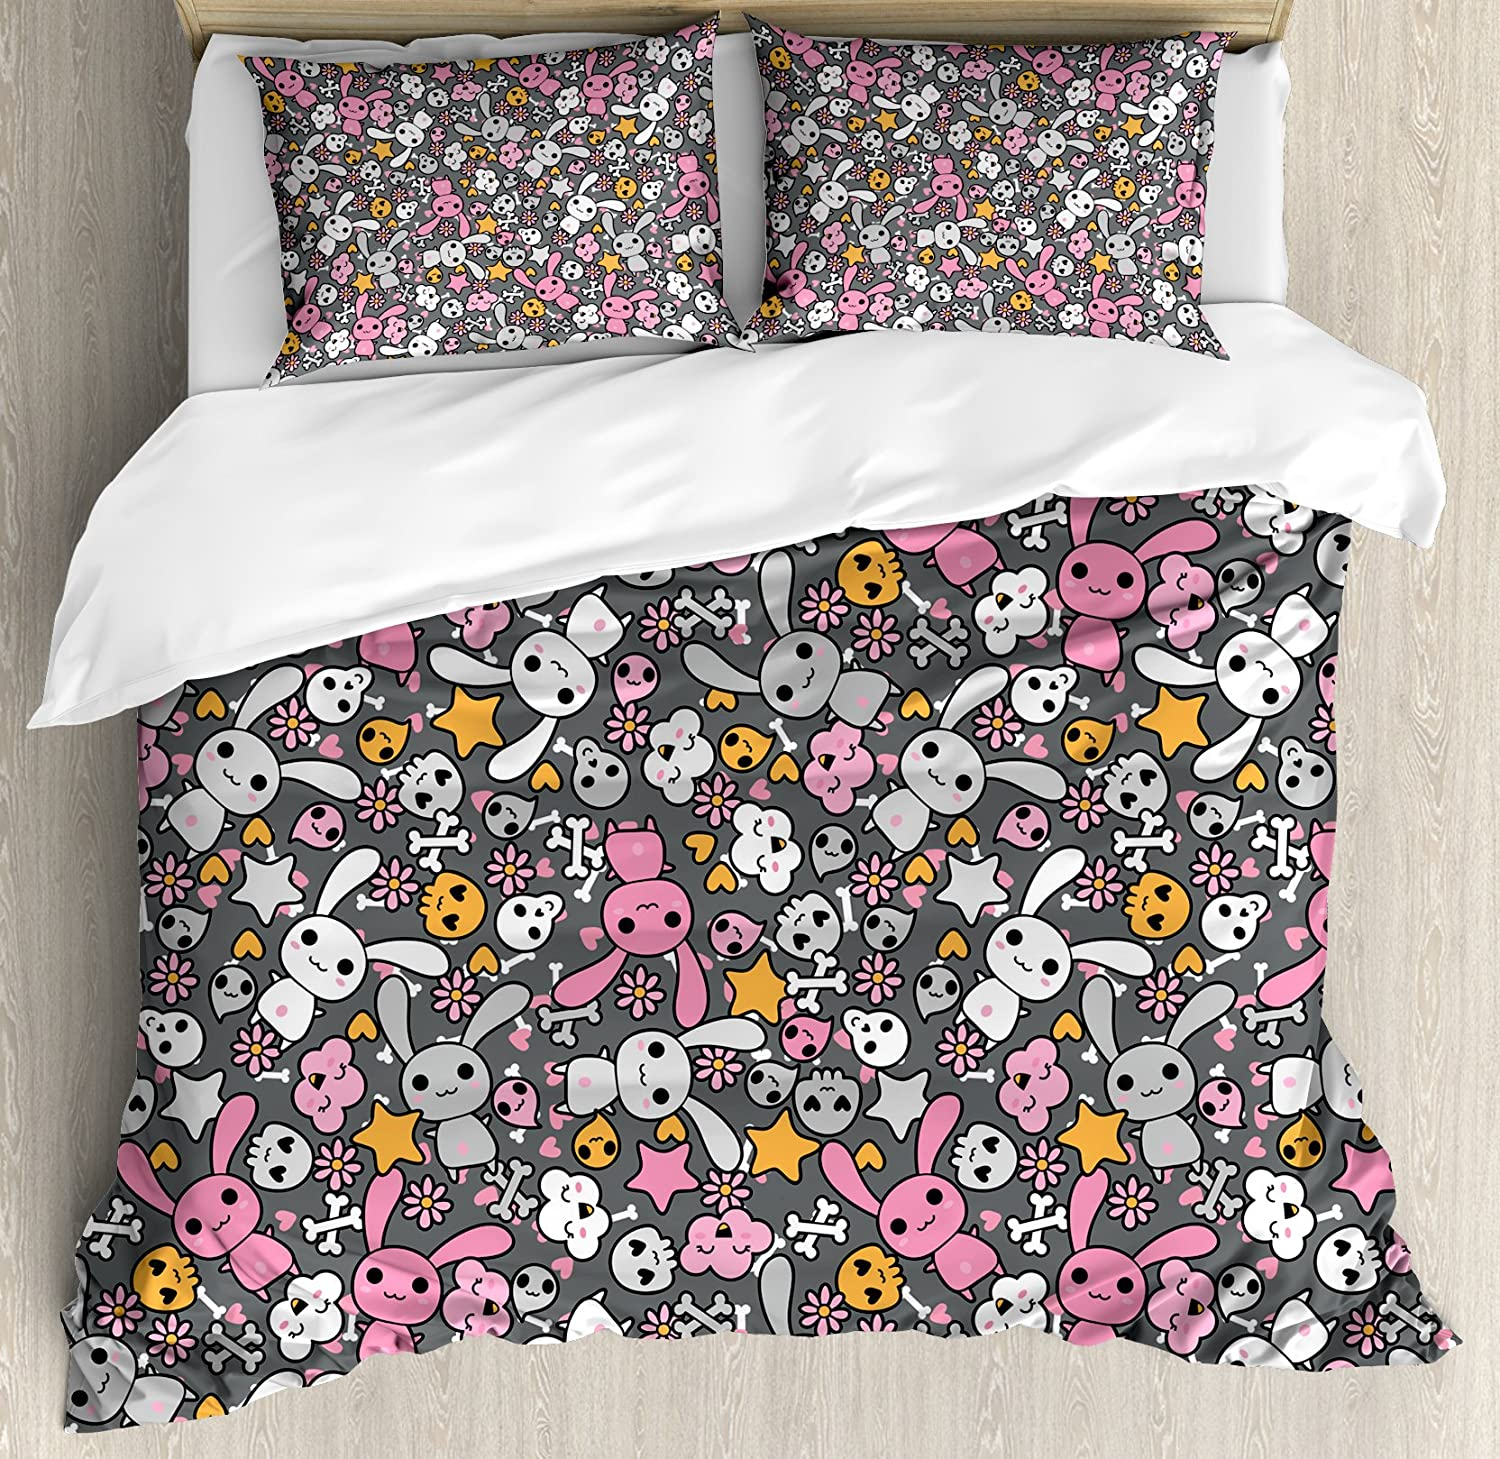 Ambesonne Nursery Duvet Cover Set, Kawaii Bunnies and Clouds Heart Eyed Skulls Japanese Anime Design Print, Decorative 3 Piece Bedding Set with 2 Pillow Shams, Queen Size, Grey Pink